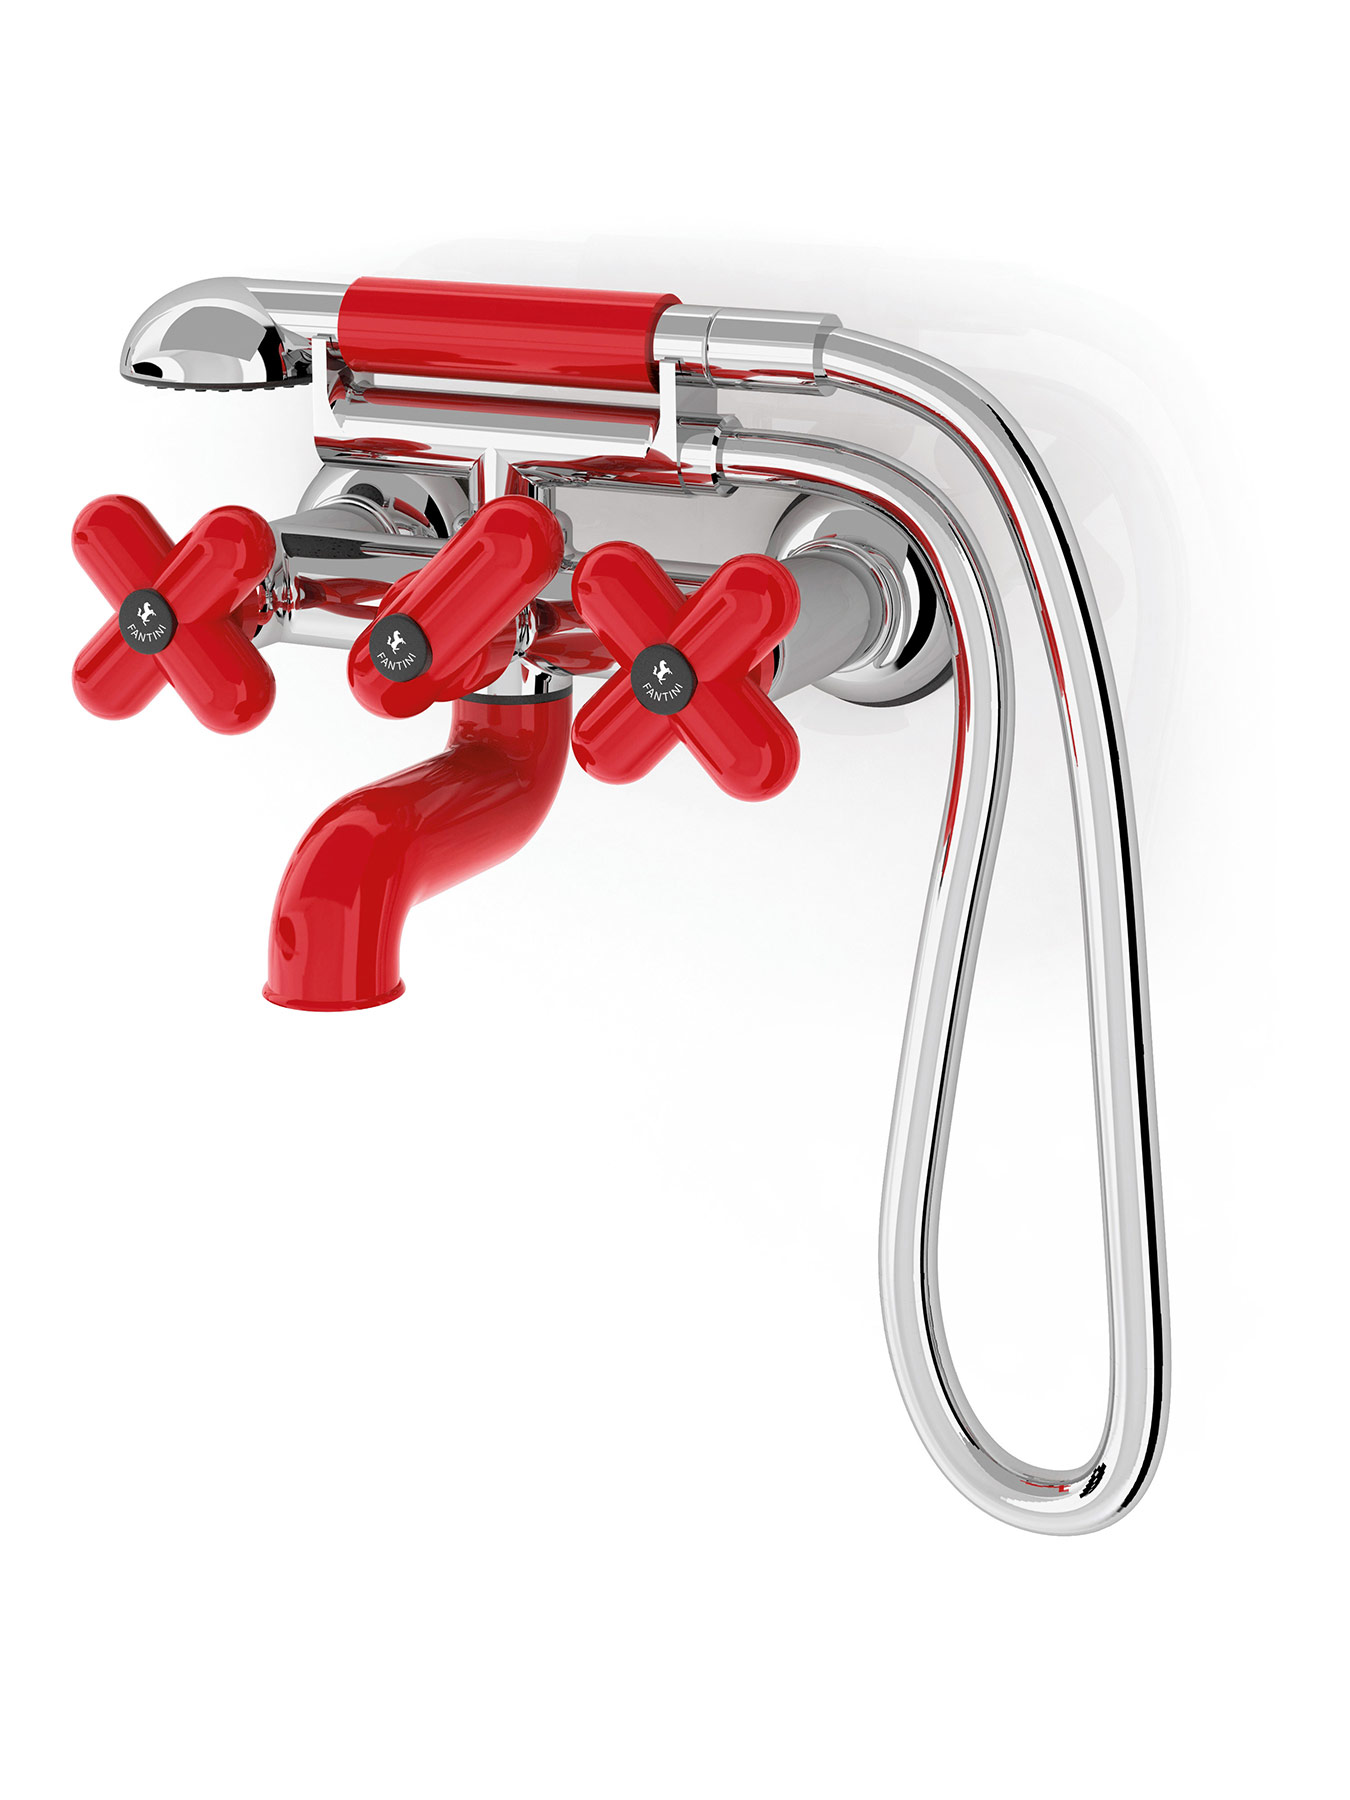 Modern Balocchi Wall Mount Tub Filler